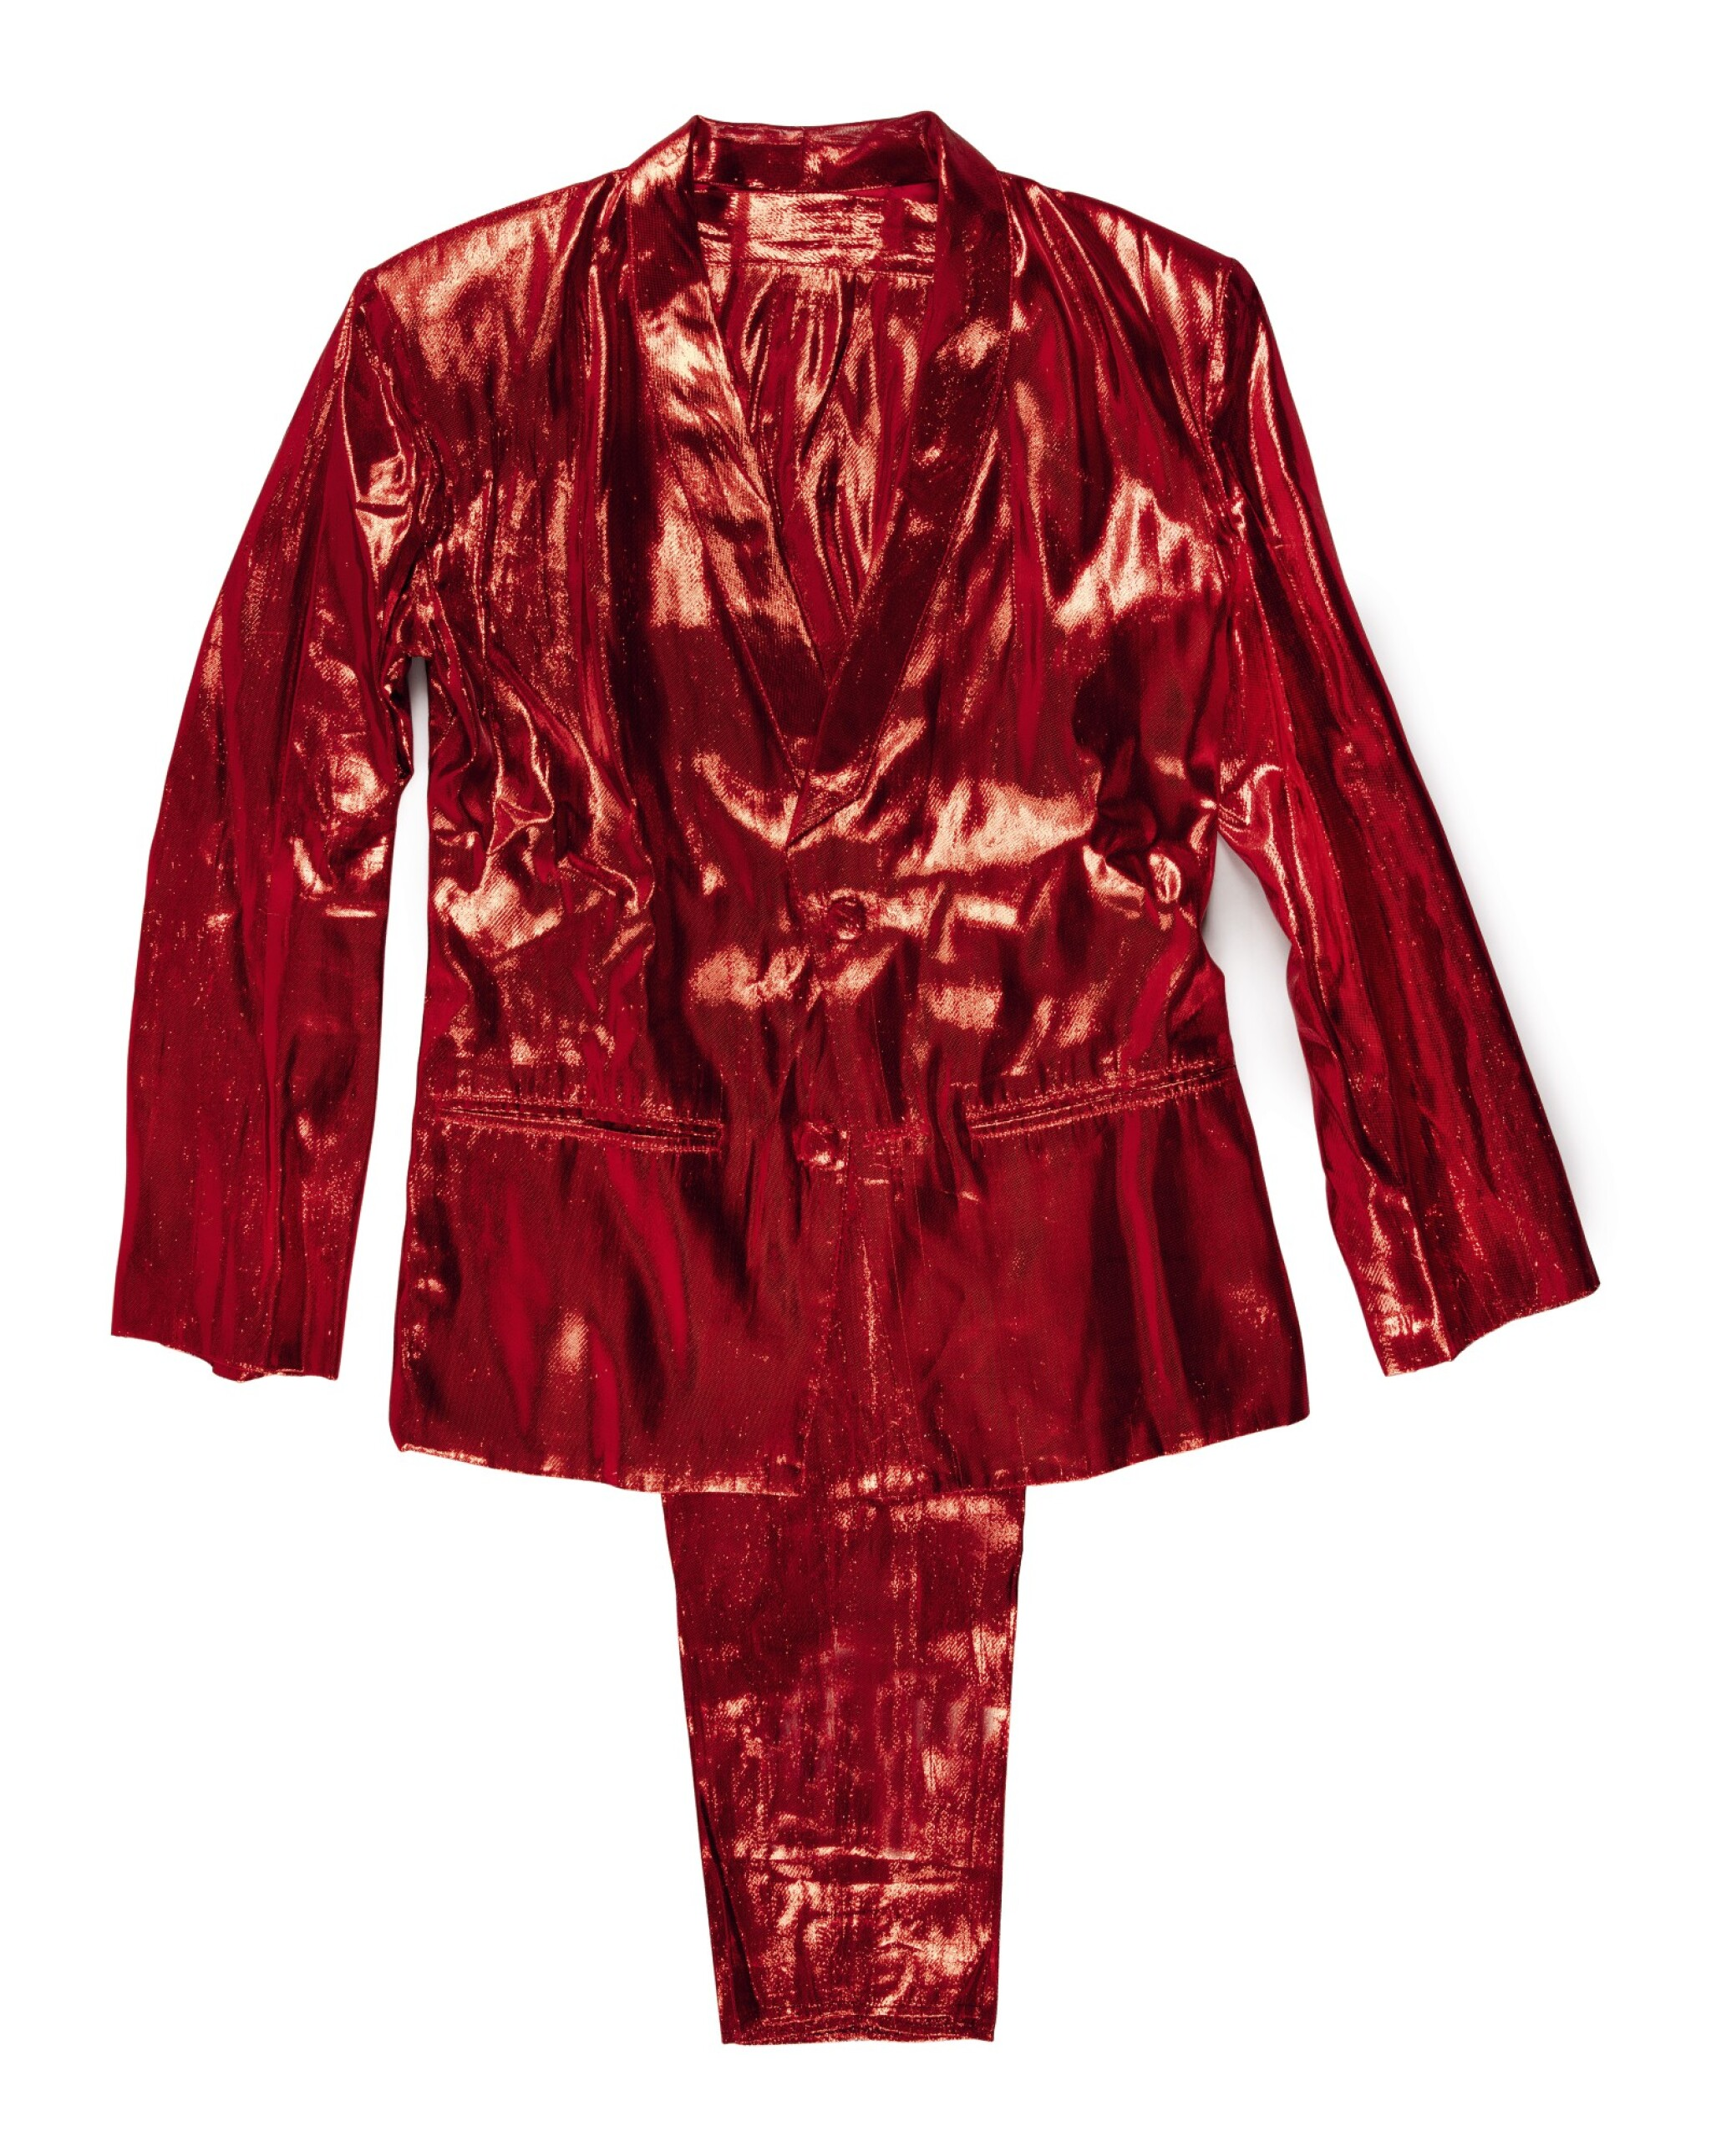 """View full screen - View 1 of Lot 97. DR. DRE'S SHINY RED WORLD CLASS WRECKIN' CRU """"RAPPED IN ROMANCE"""" SUIT, CA 1985-86."""